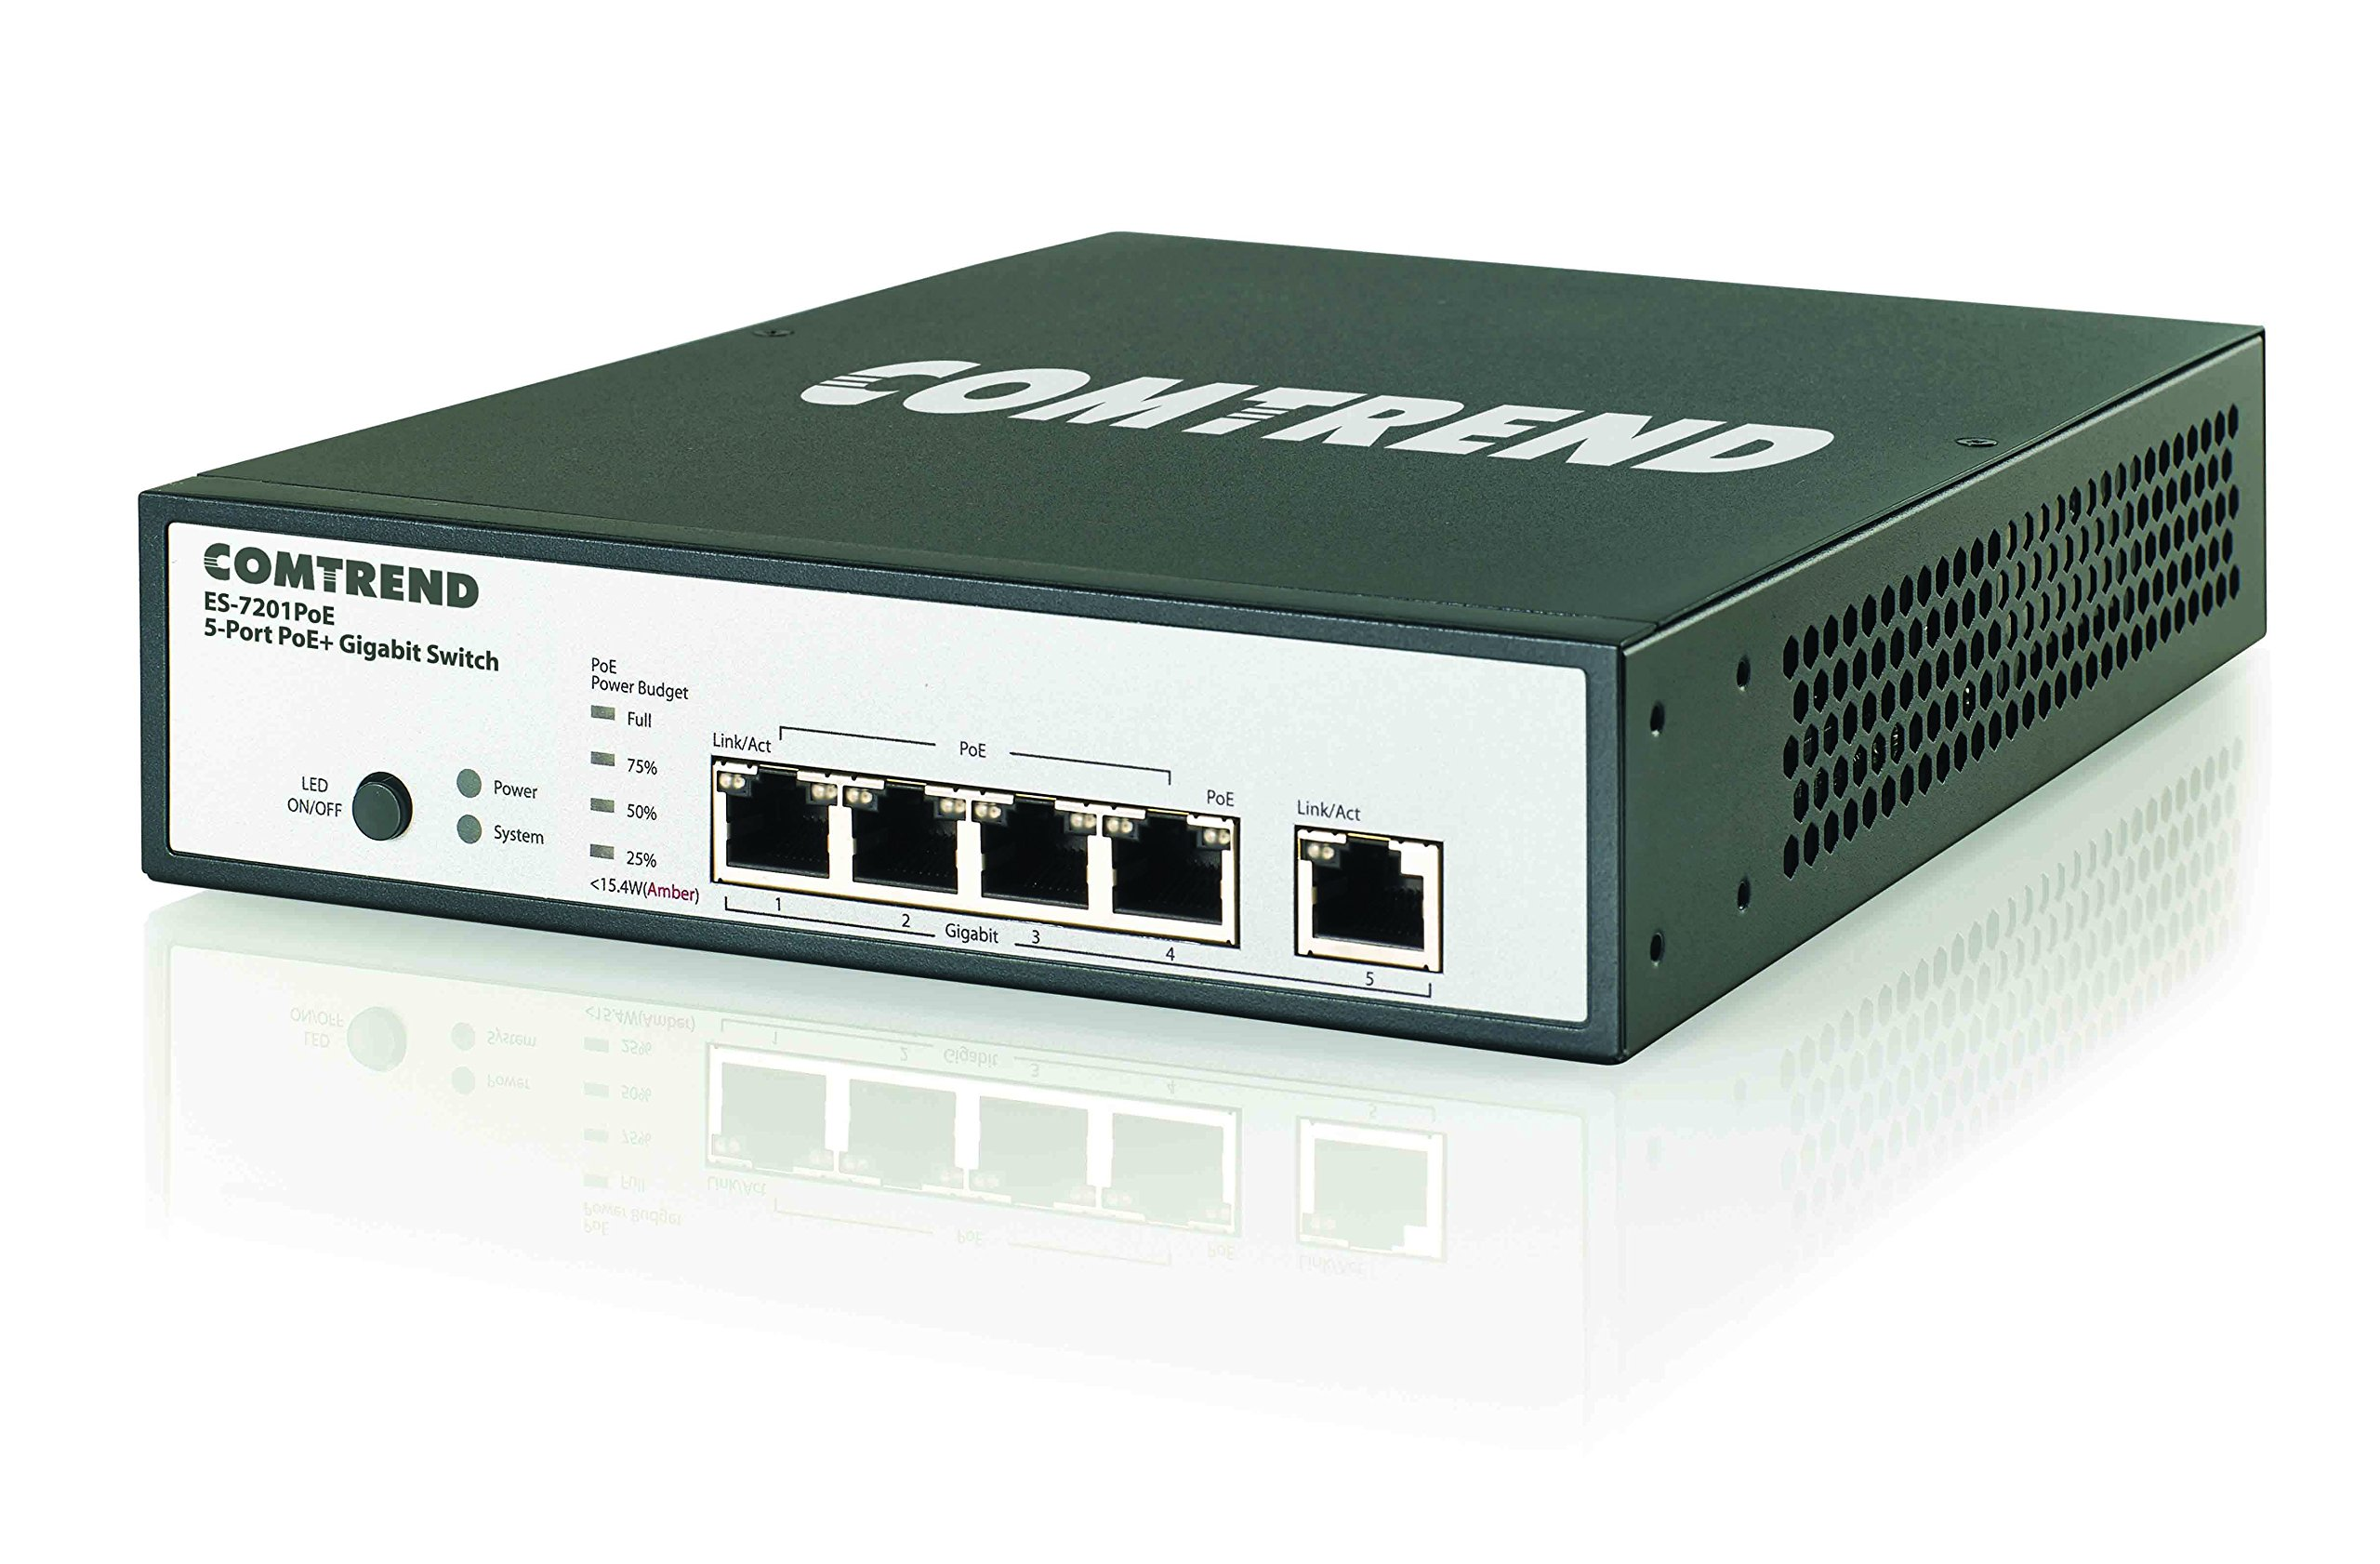 Comtrend High Power 5-Port 802.3at PoE+ Gigabit Ethernet Switch ES-7201POE by Comtrend